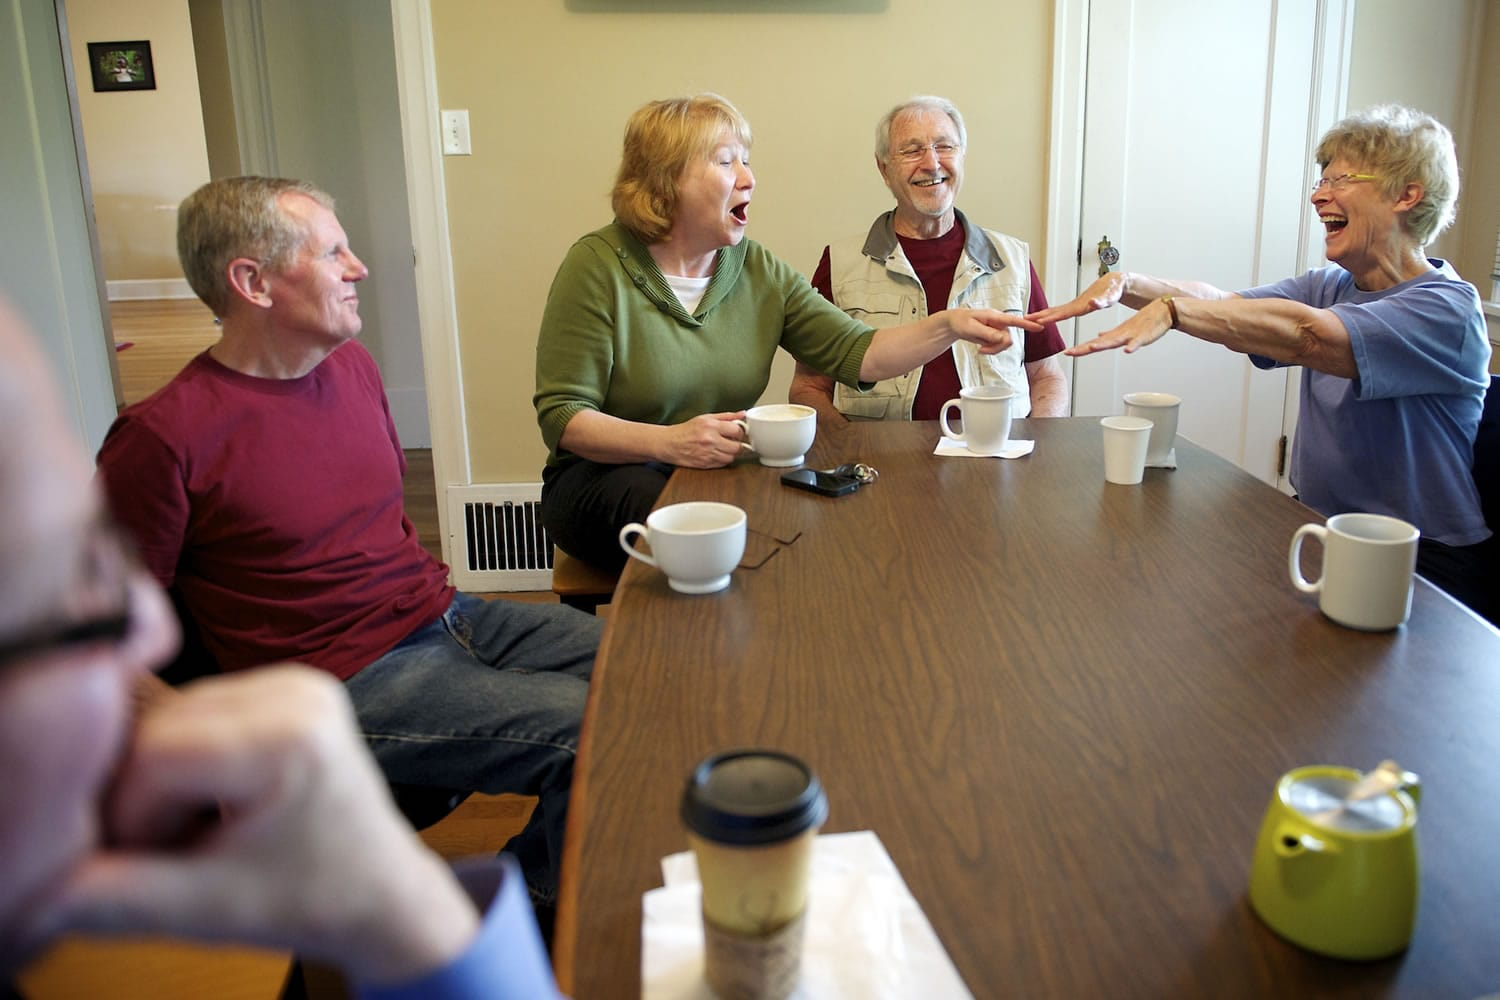 Anne McEnerny-Ogle, left, wearing green, shares a light hearted moment with Andrea Powley, right, wearing blue, as her husband, Randall Powley, center, and Terry Ogle, Anne's husband, chat during a neighbors meeting at Latte Da Coffee House.